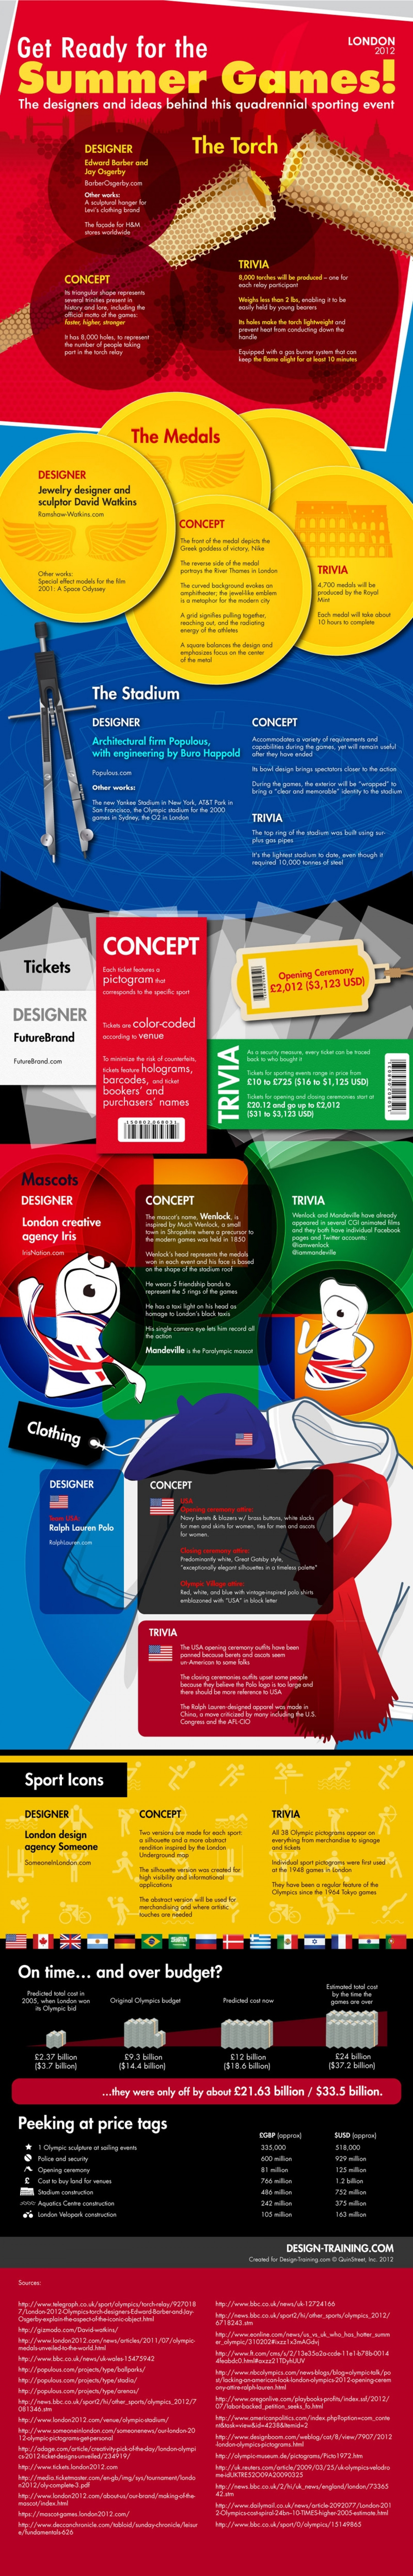 Get ready for the summer games! Infographic